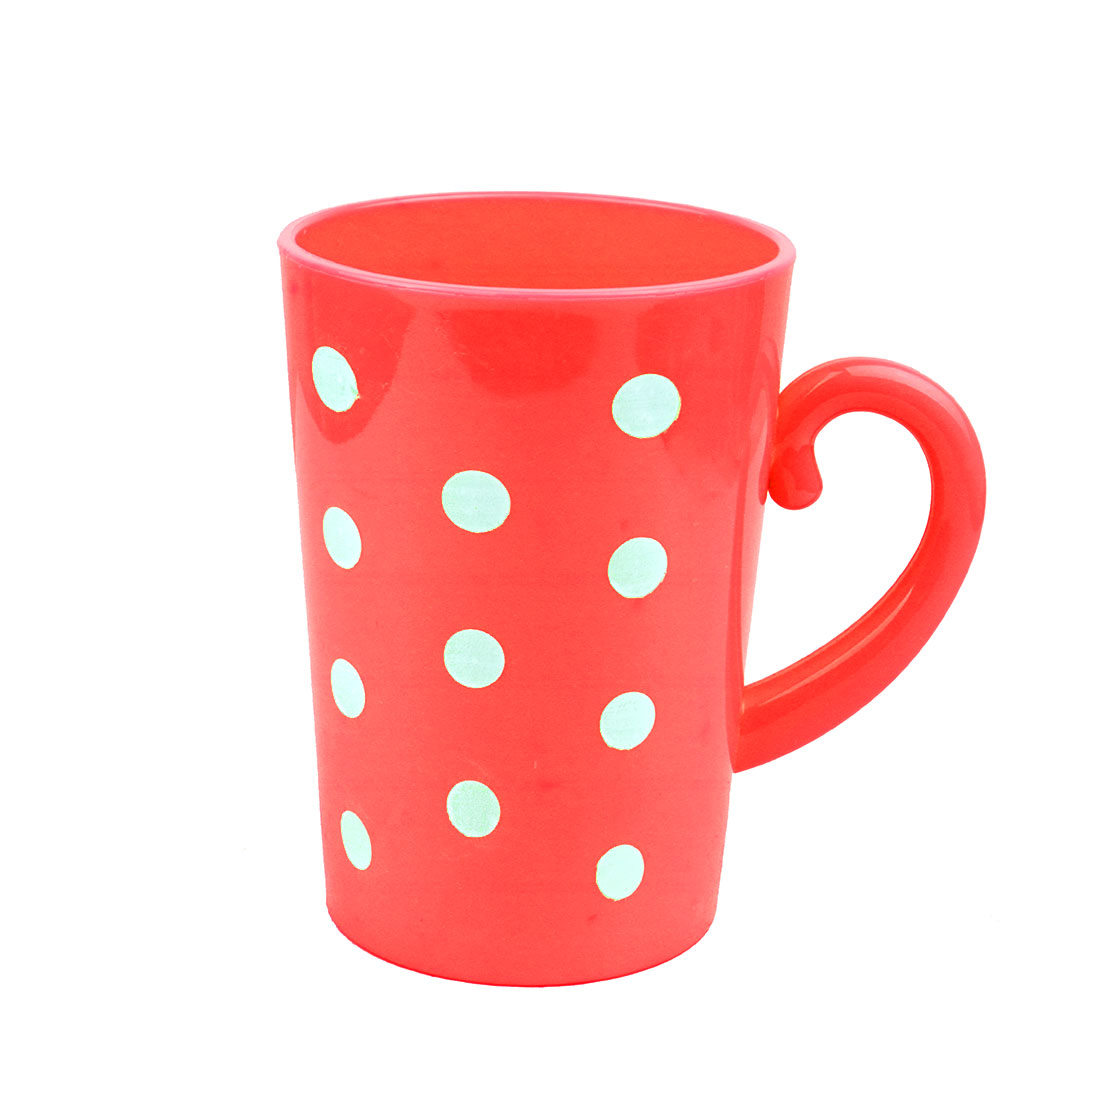 Household Bathroom Plastic Polka Dot Pattern Toothbrush Cup Washing Tool Red